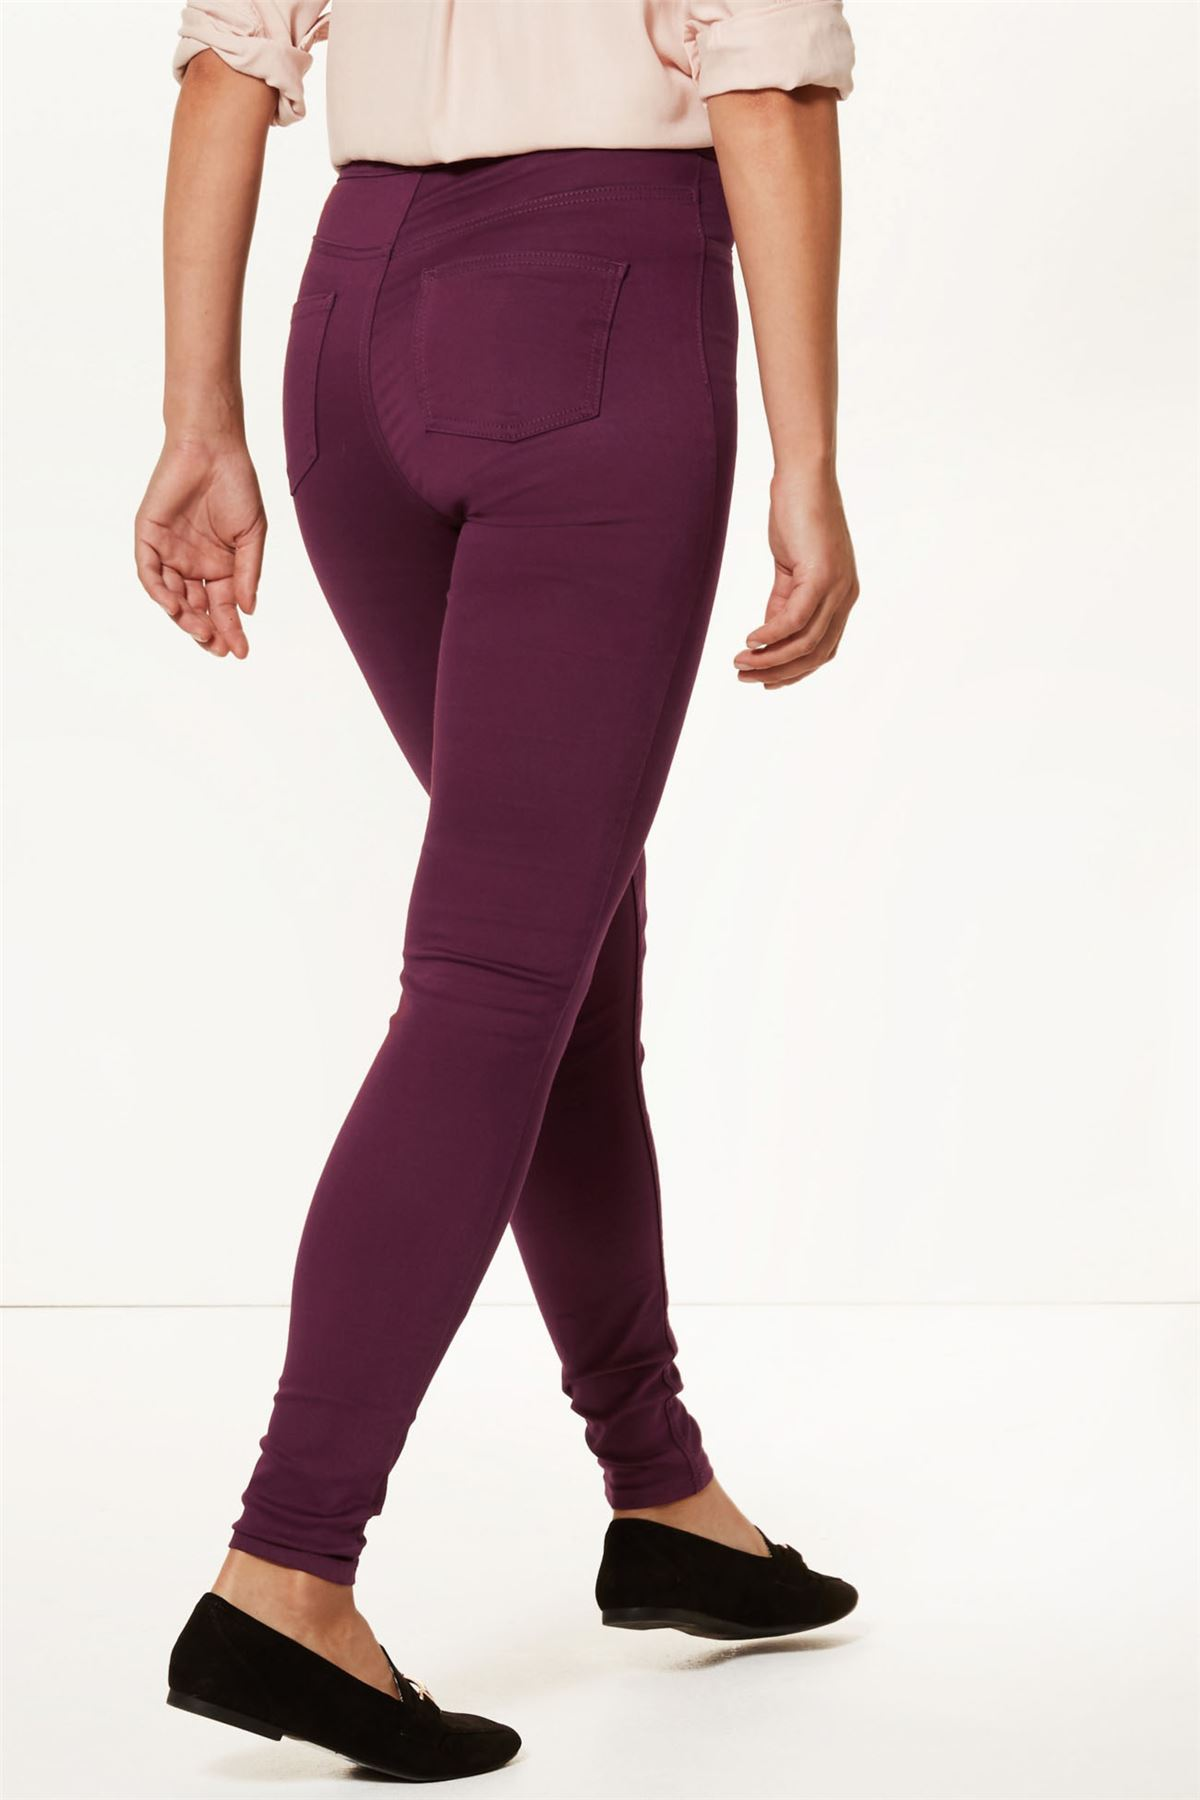 NEW-Ex-M-amp-S-Womens-Stretch-Fit-High-Waist-Skinny-Jeggings-Size-8-10-12-14-16-18 thumbnail 21